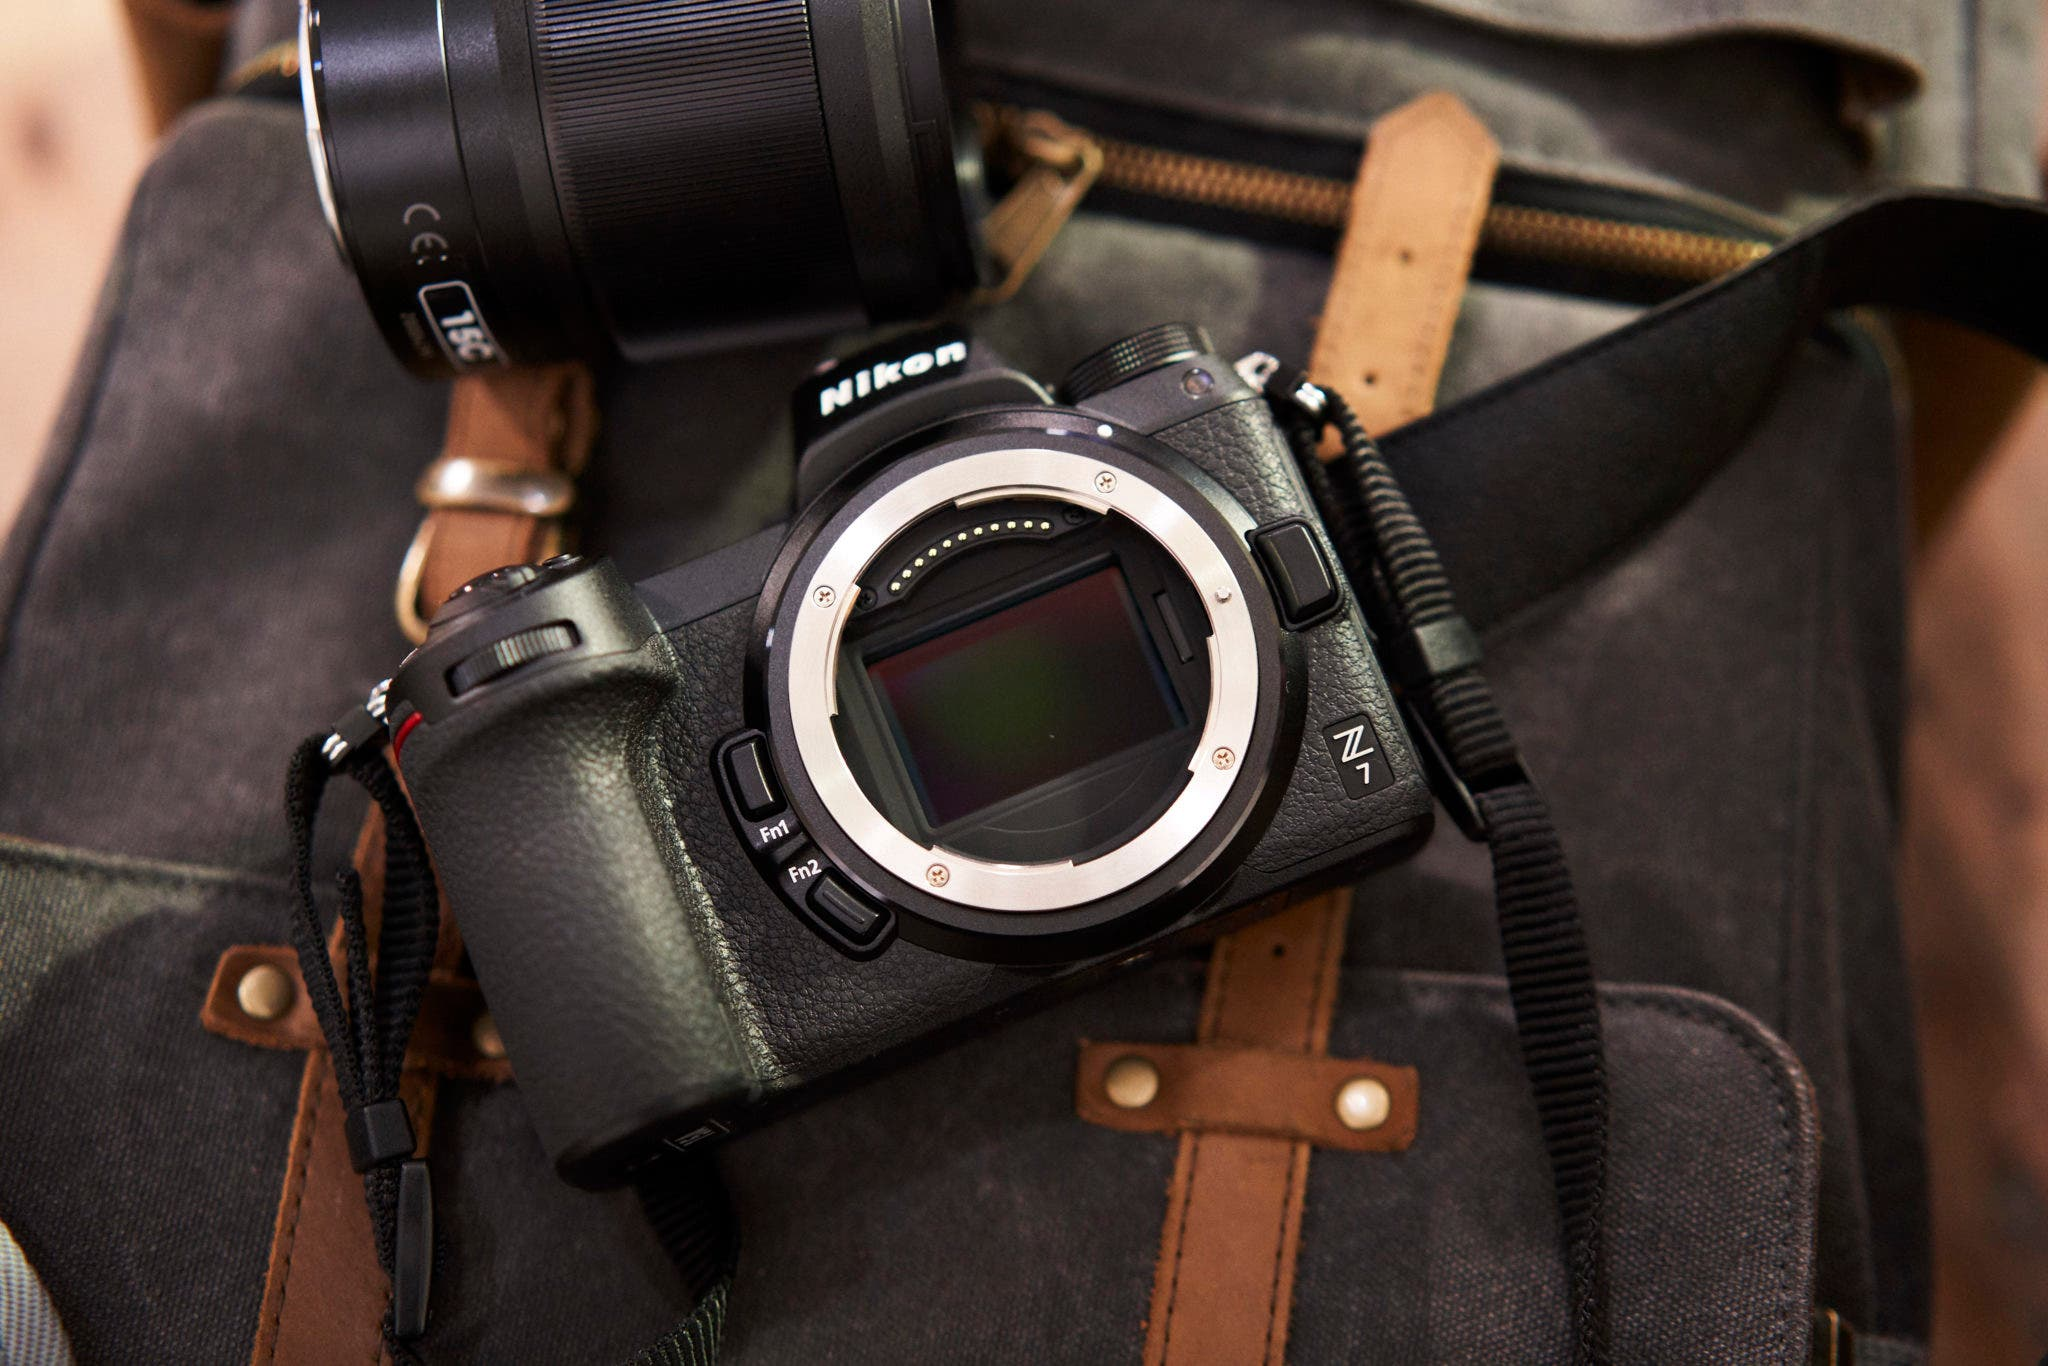 The 10 Best Camera Sensors According to DXOMark for March 2019